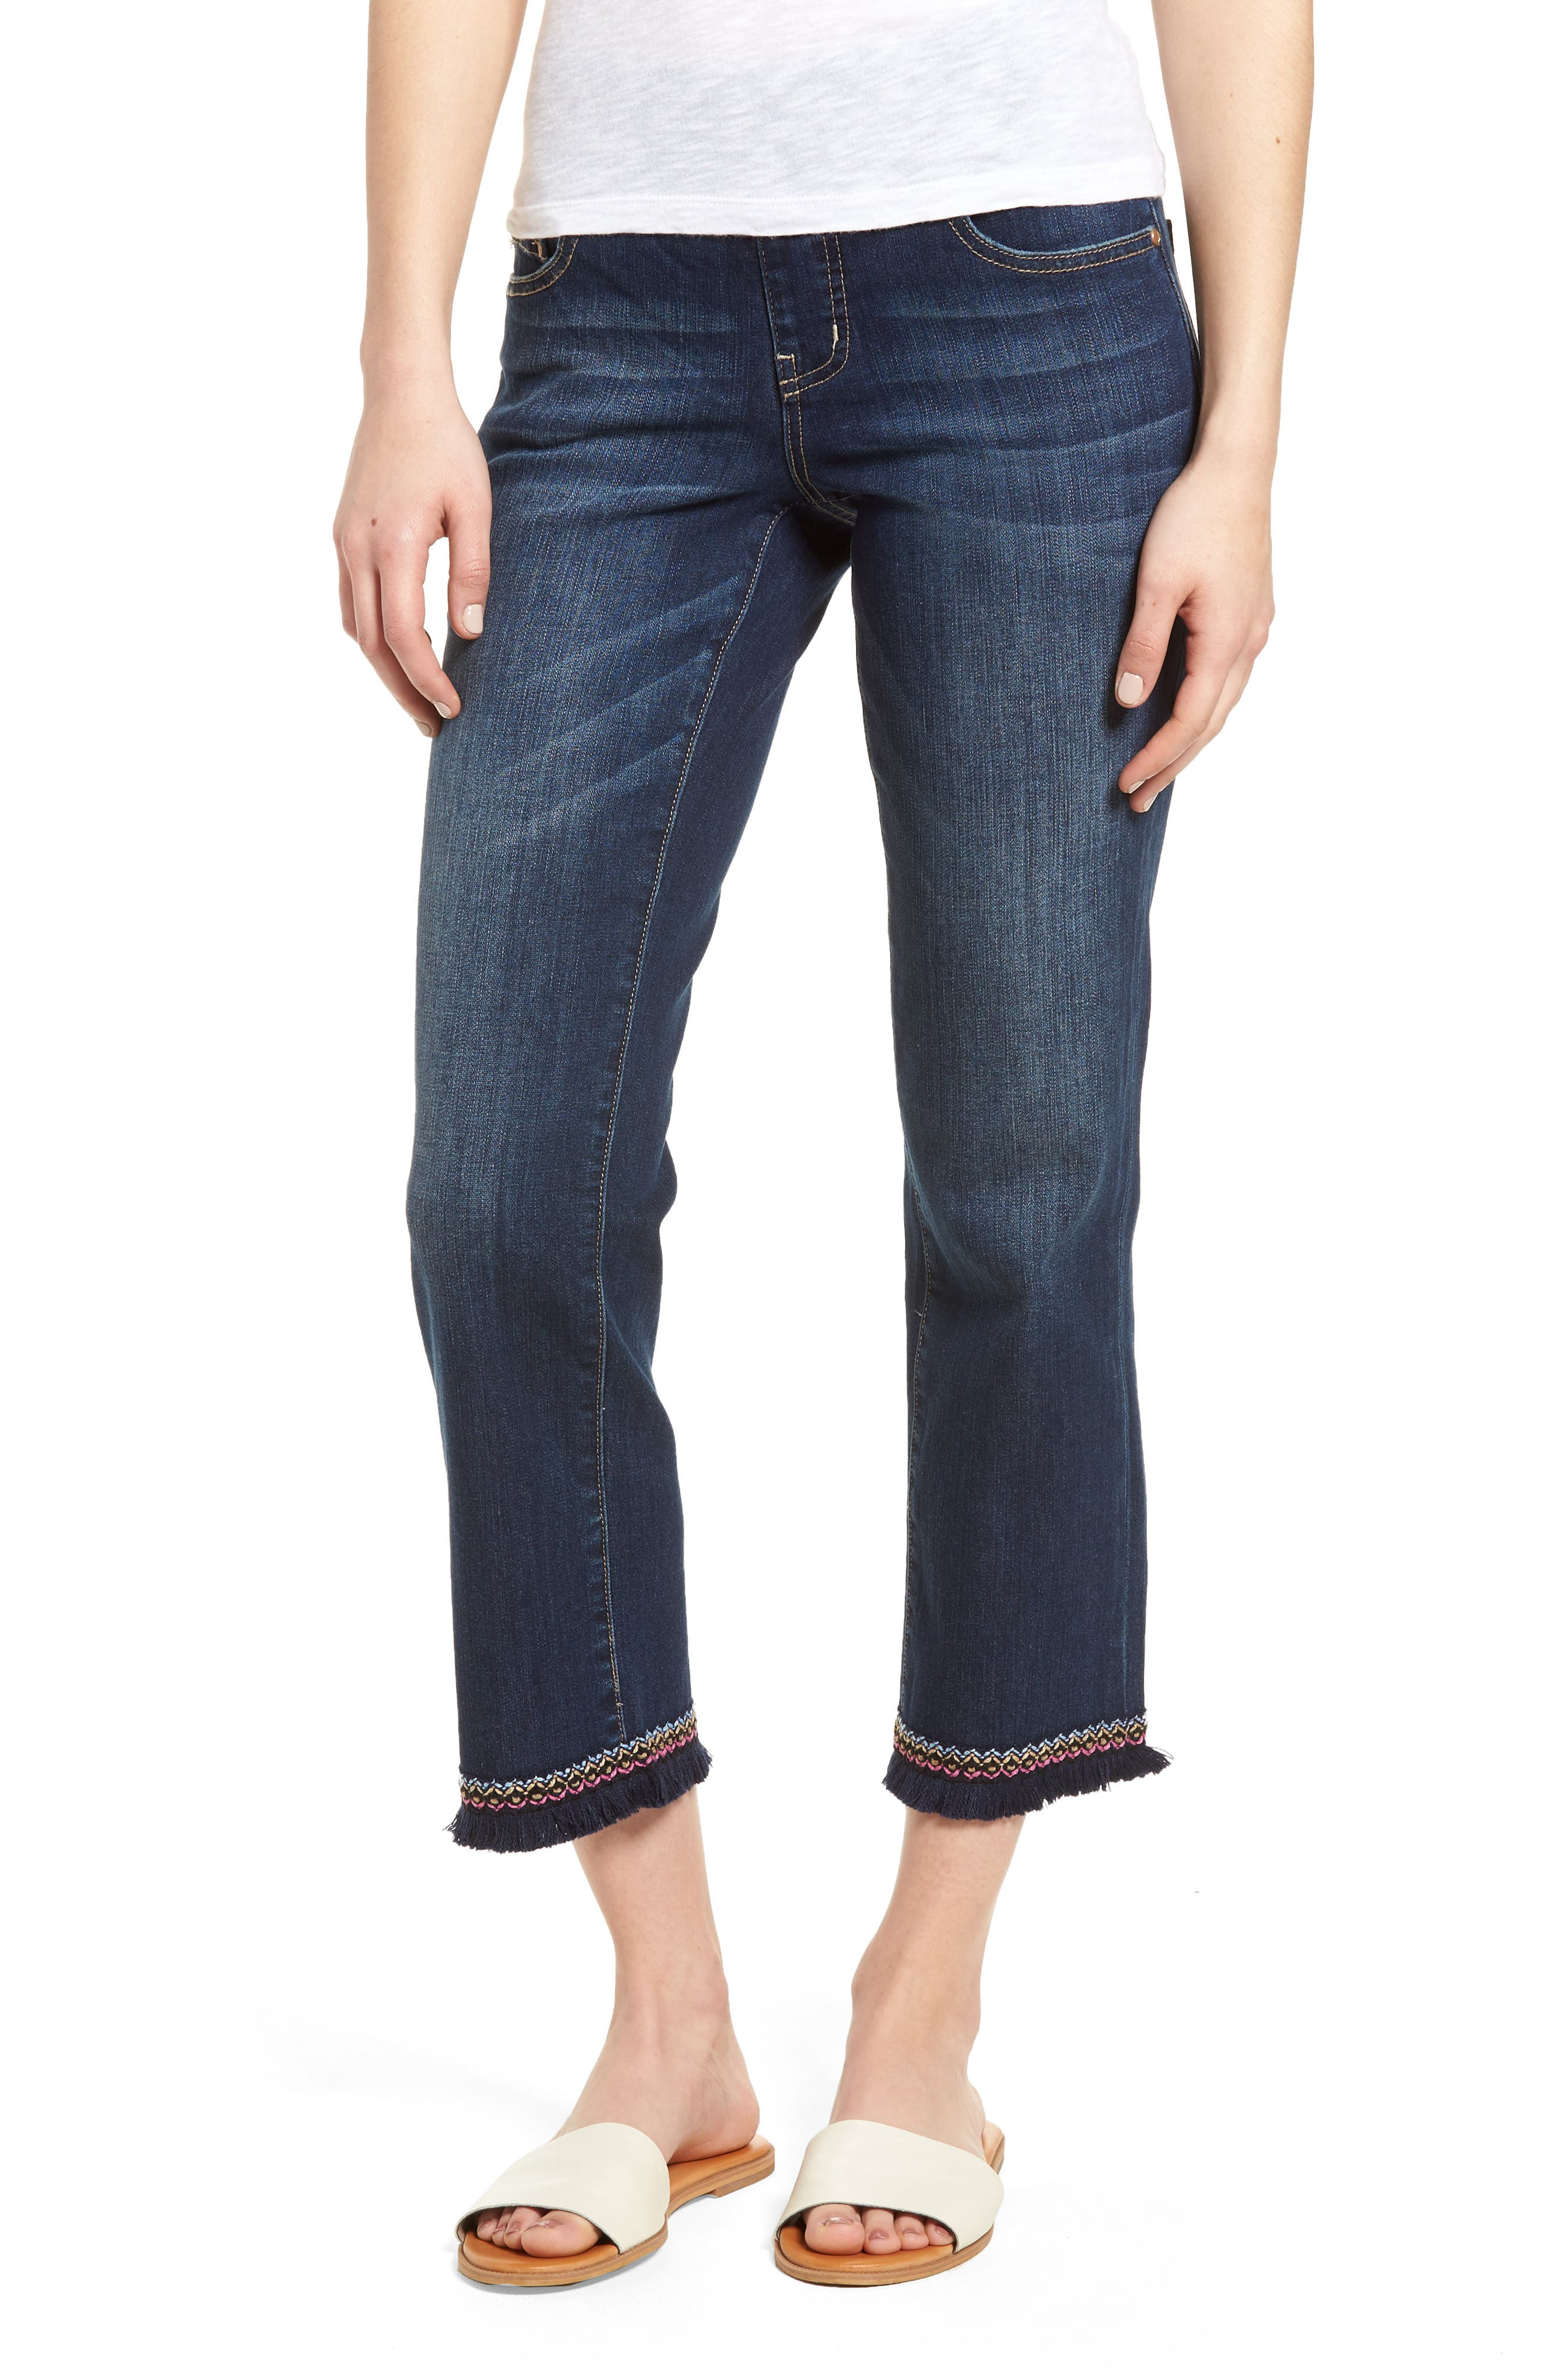 Peri Embroidery Fringe Jeans,                         Main,                         color, Med Indigo